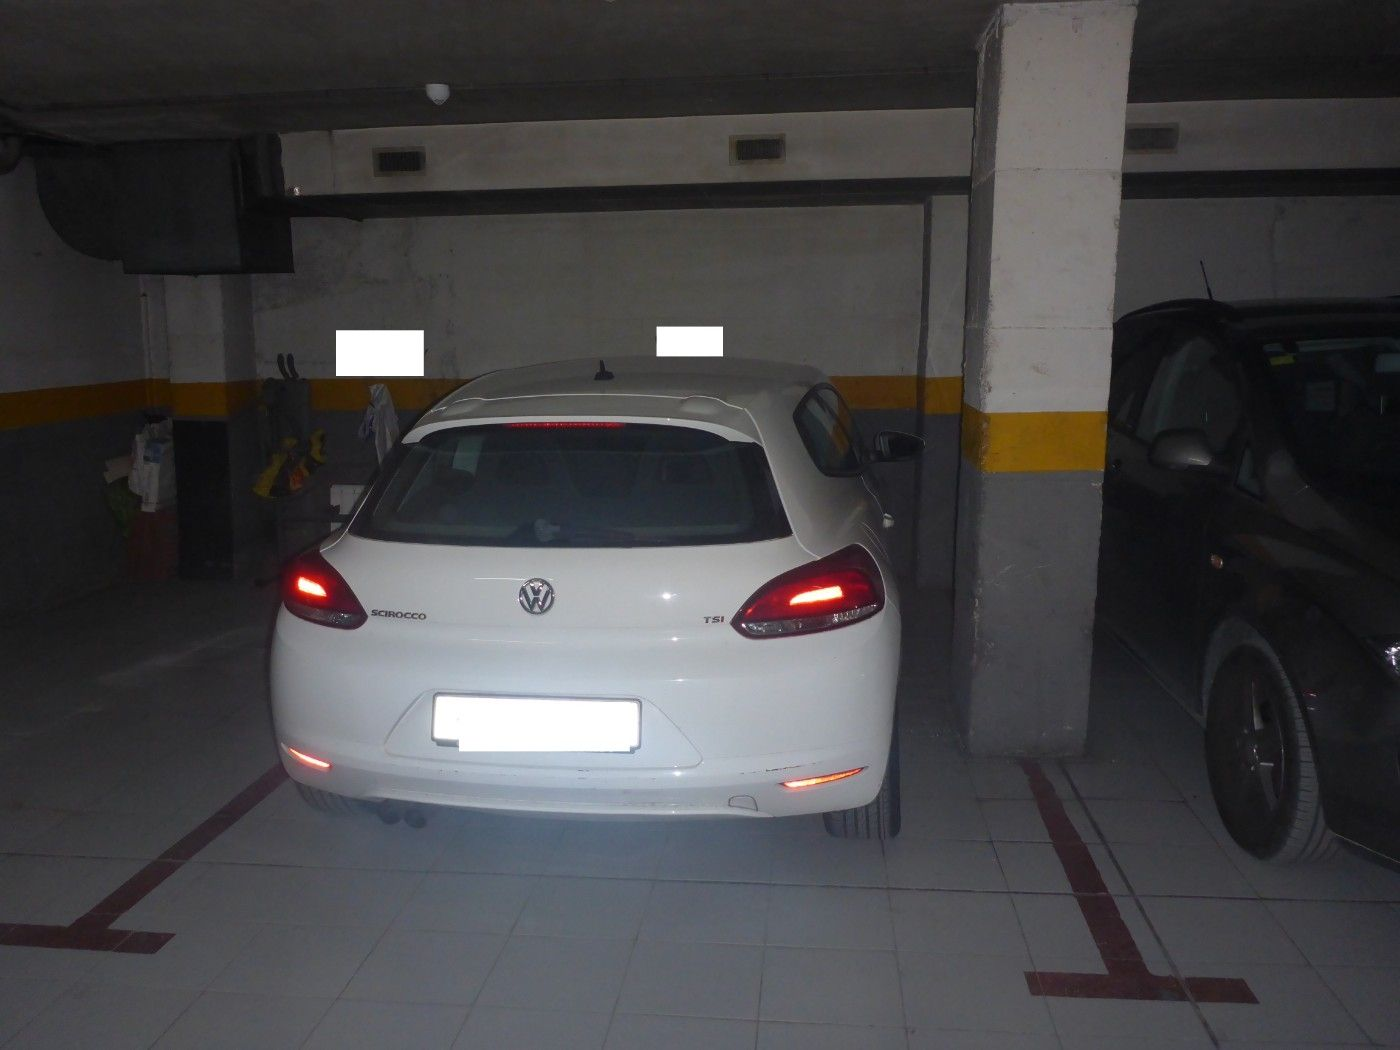 Autoparkplatz in Carrer Ancianitat